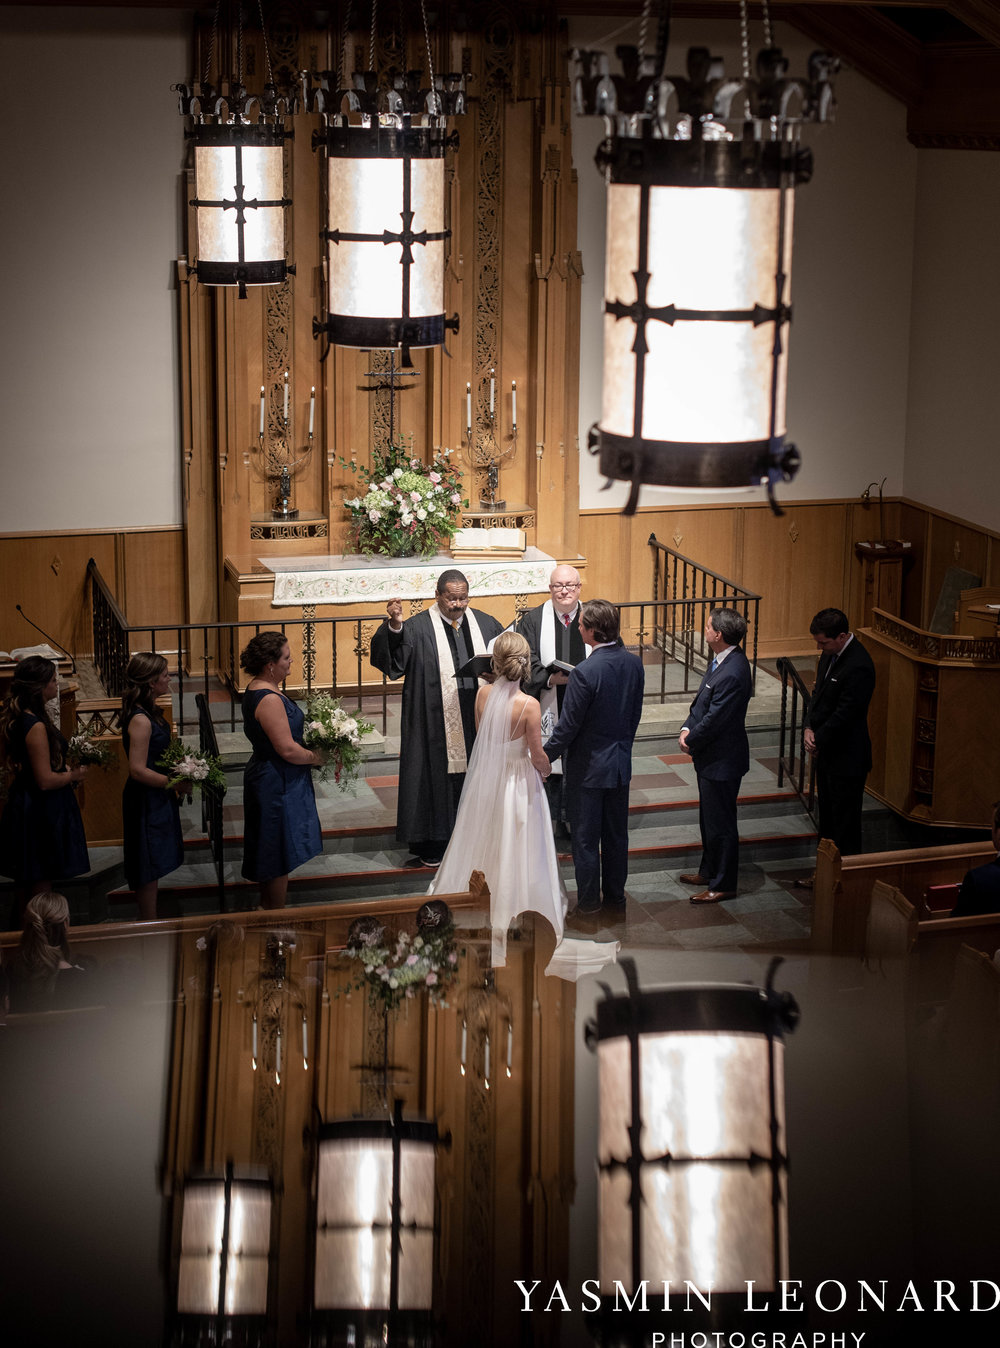 Wesley Memorial United Methodist Church - EmeryWood - High Point Weddings - High Point Wedding Photographer - NC Wedding Photographer - Yasmin Leonard Photography-24.jpg